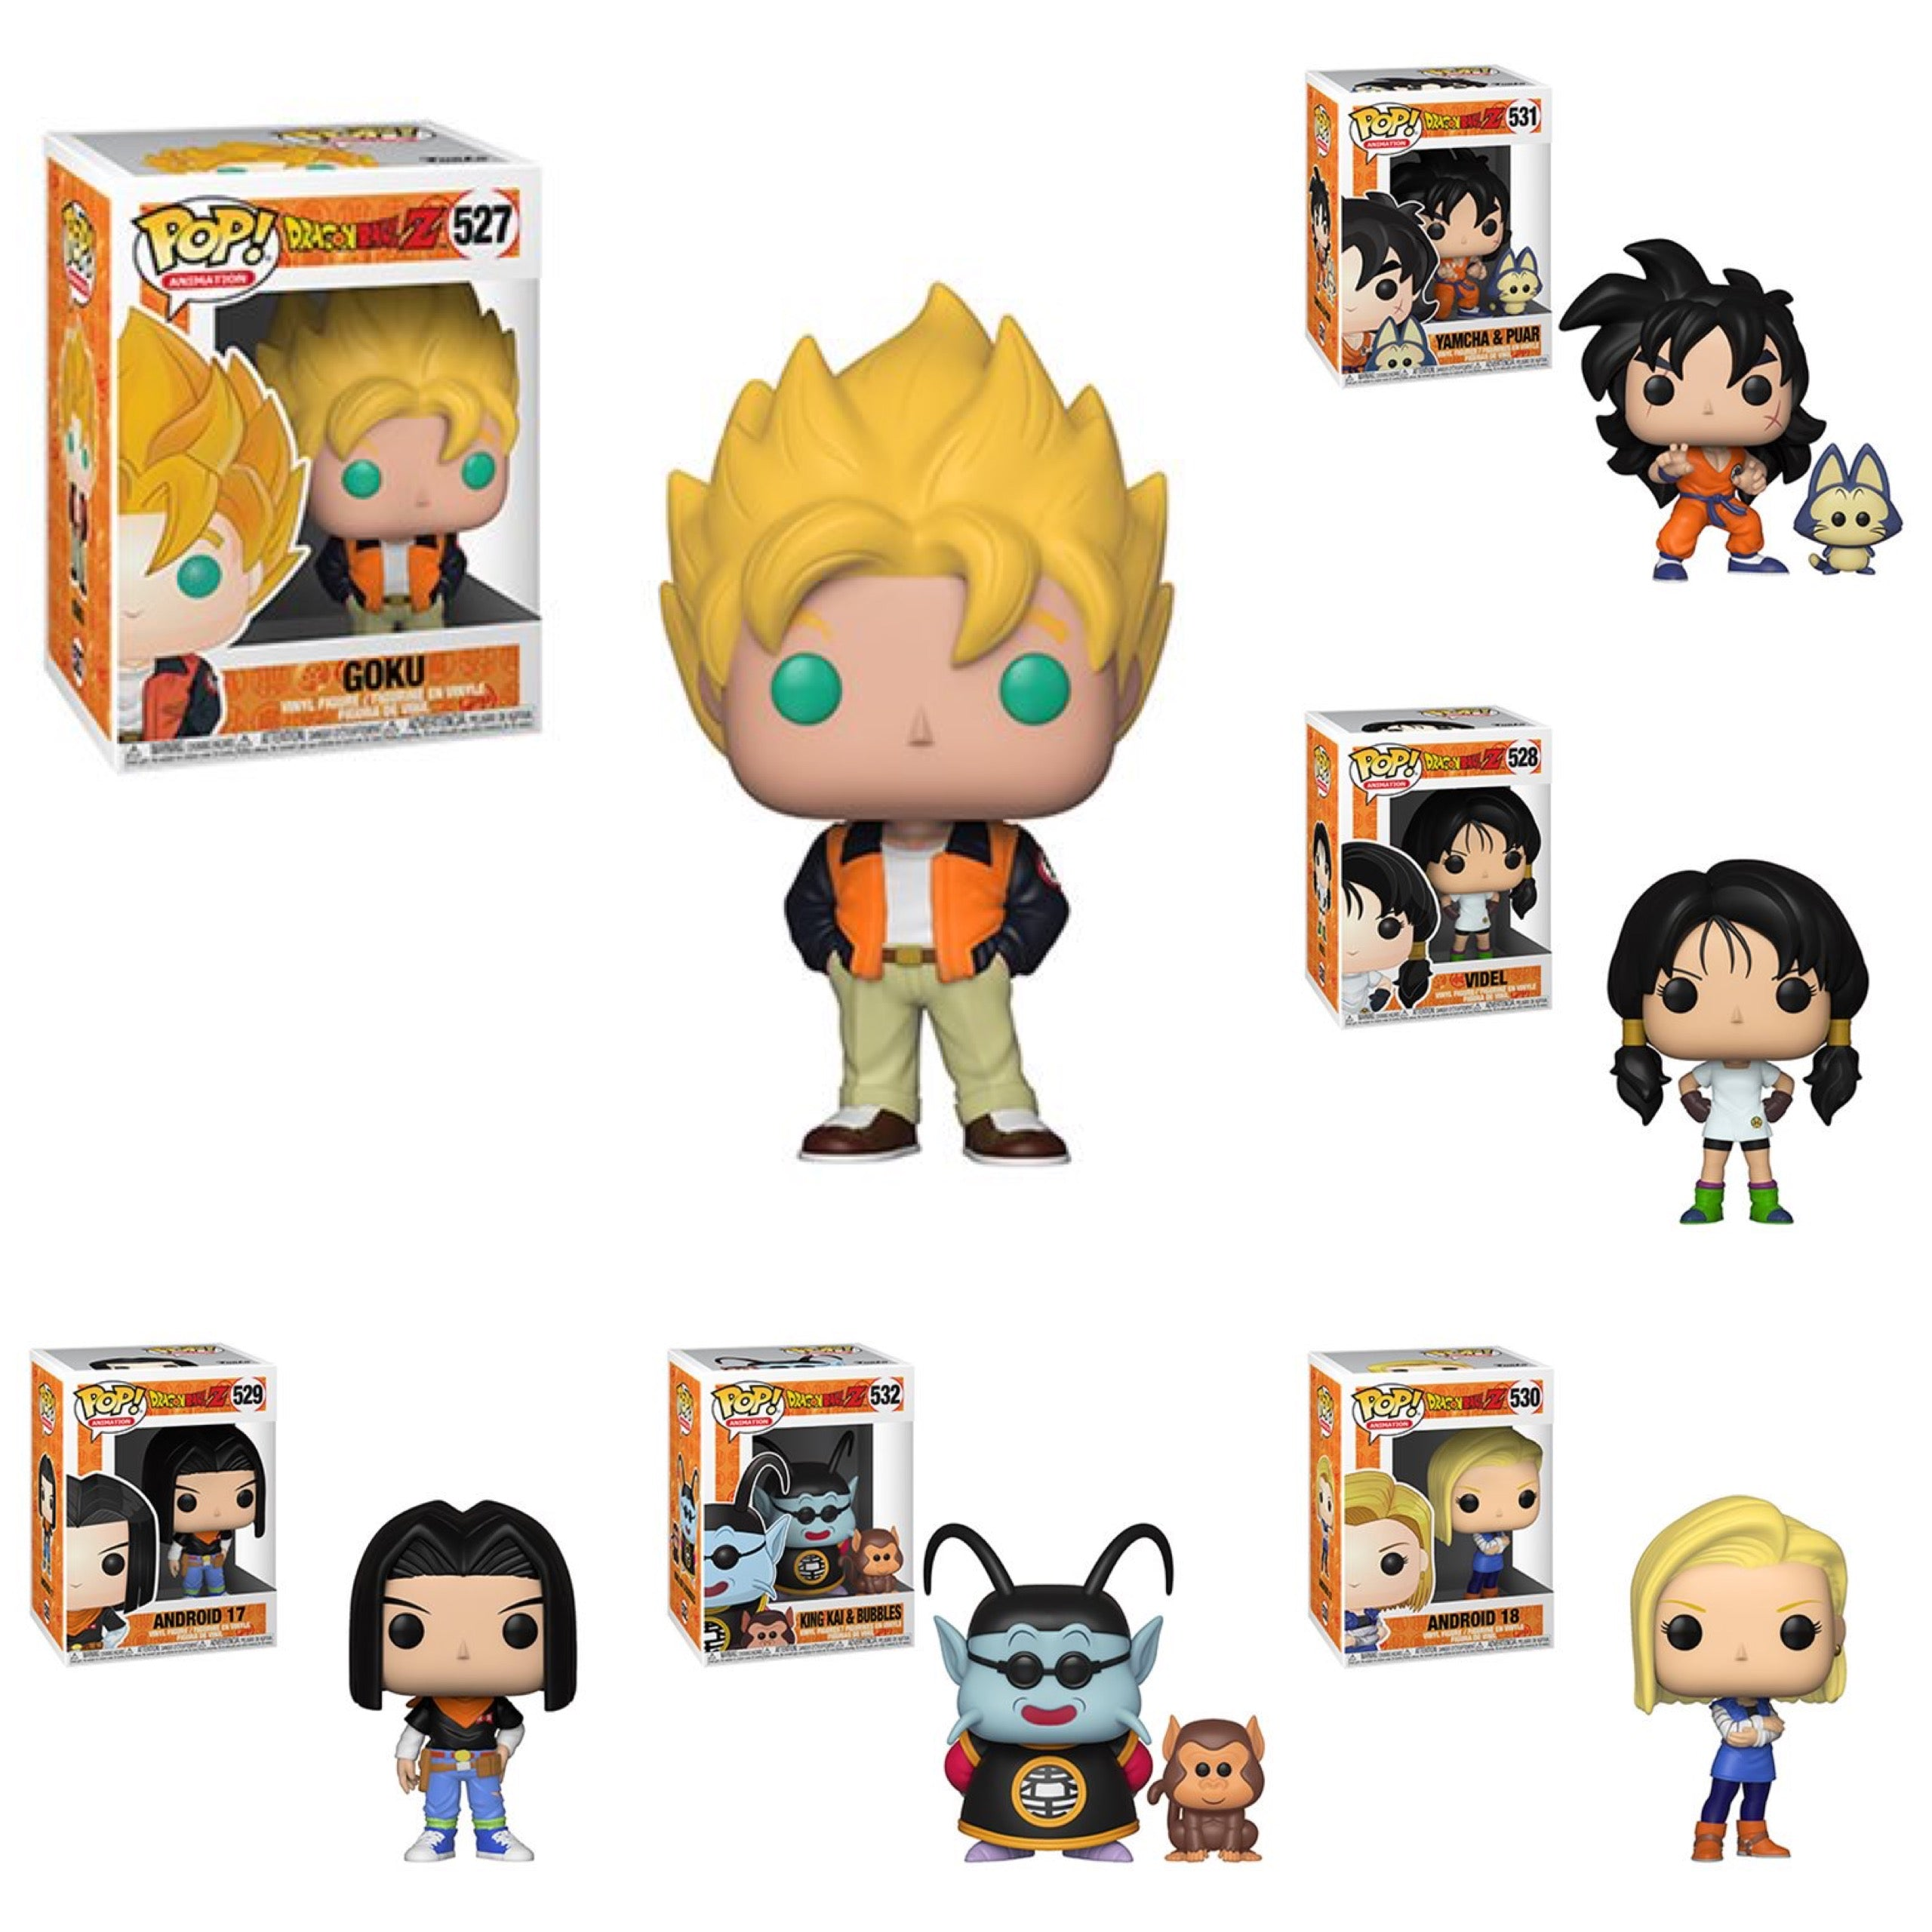 Dragon Ball Z Wave 5 Bundle (6 Figures)